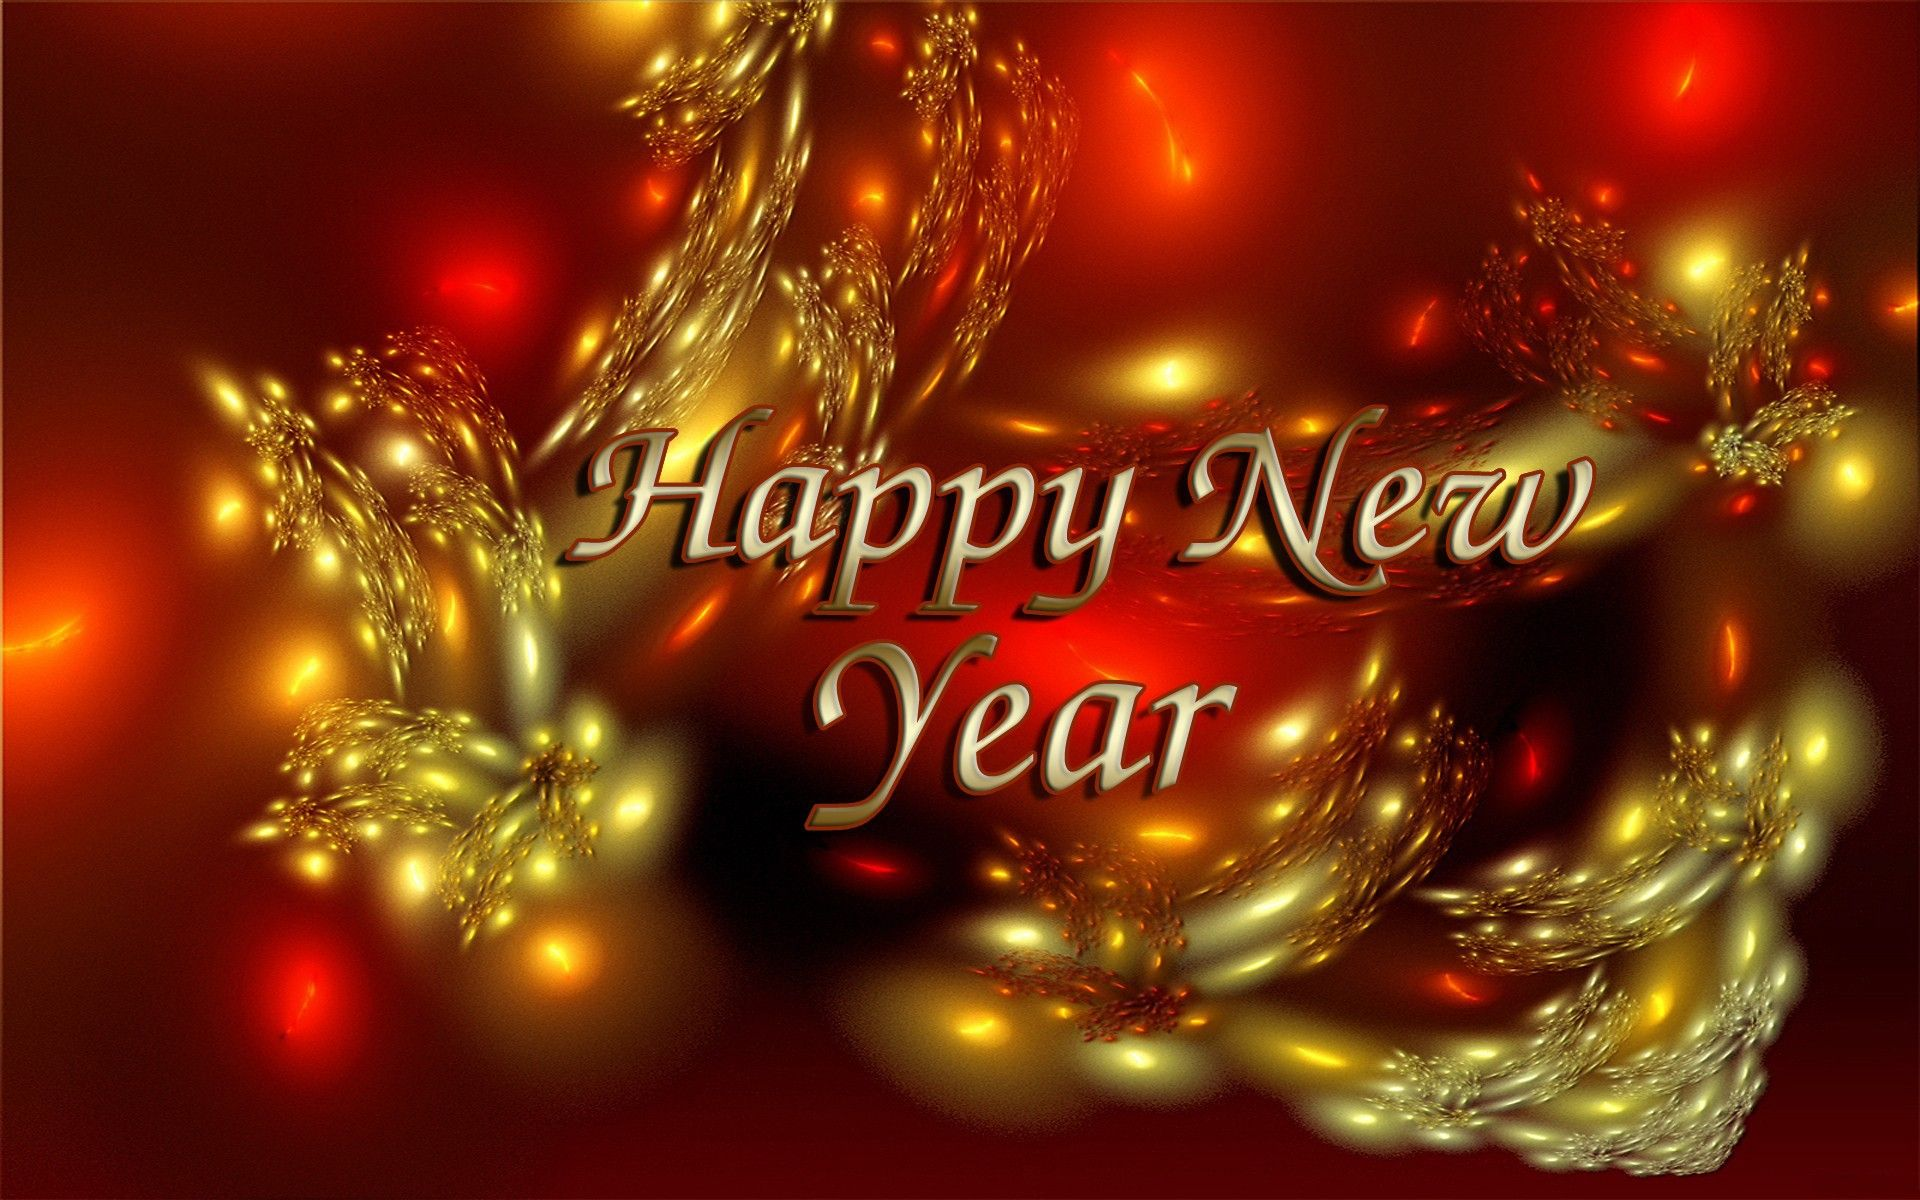 Christian Happy New Year Images For Facebook Happy New Year Happy